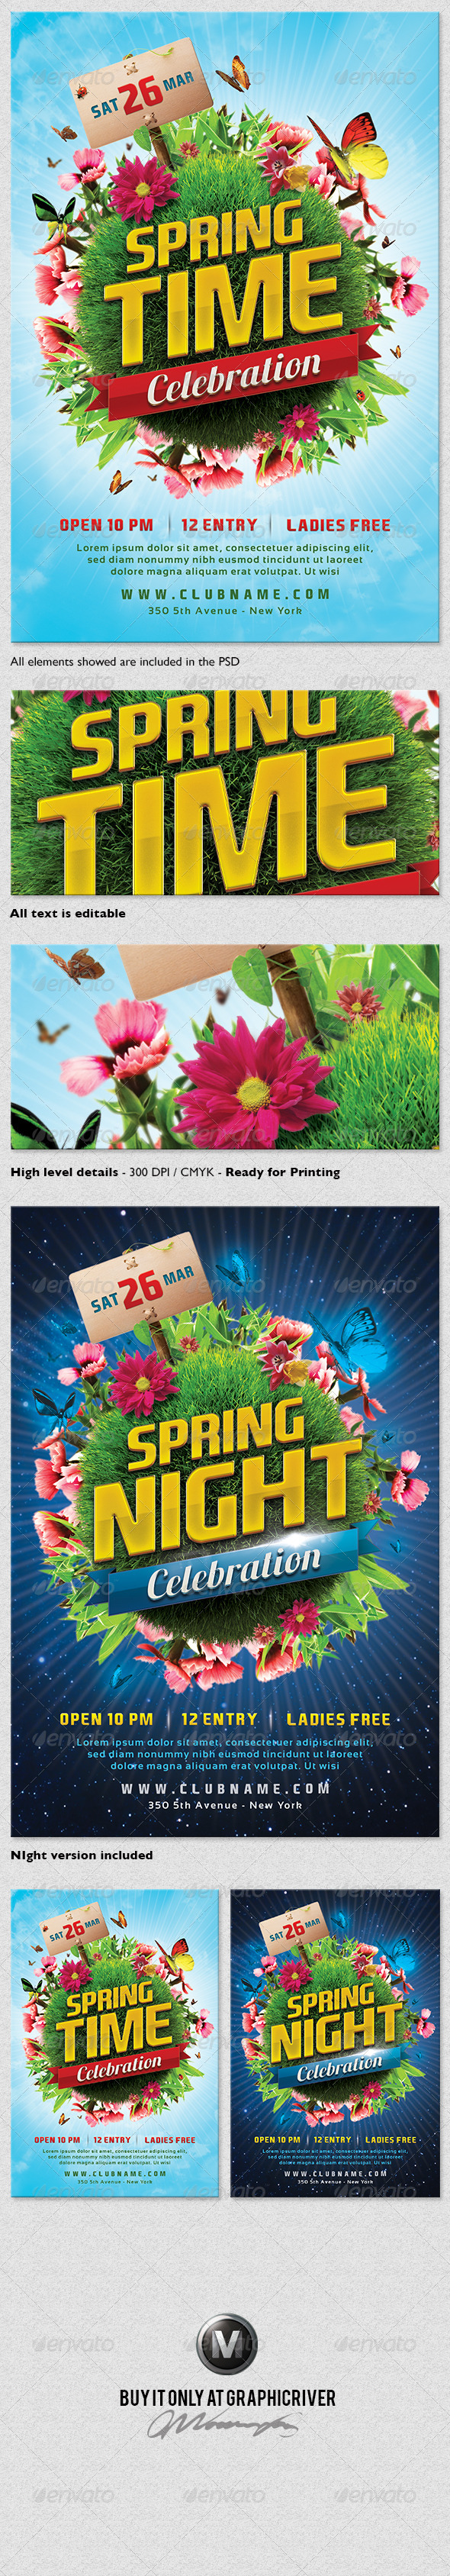 Spring Celebration Flyer Template - Events Flyers